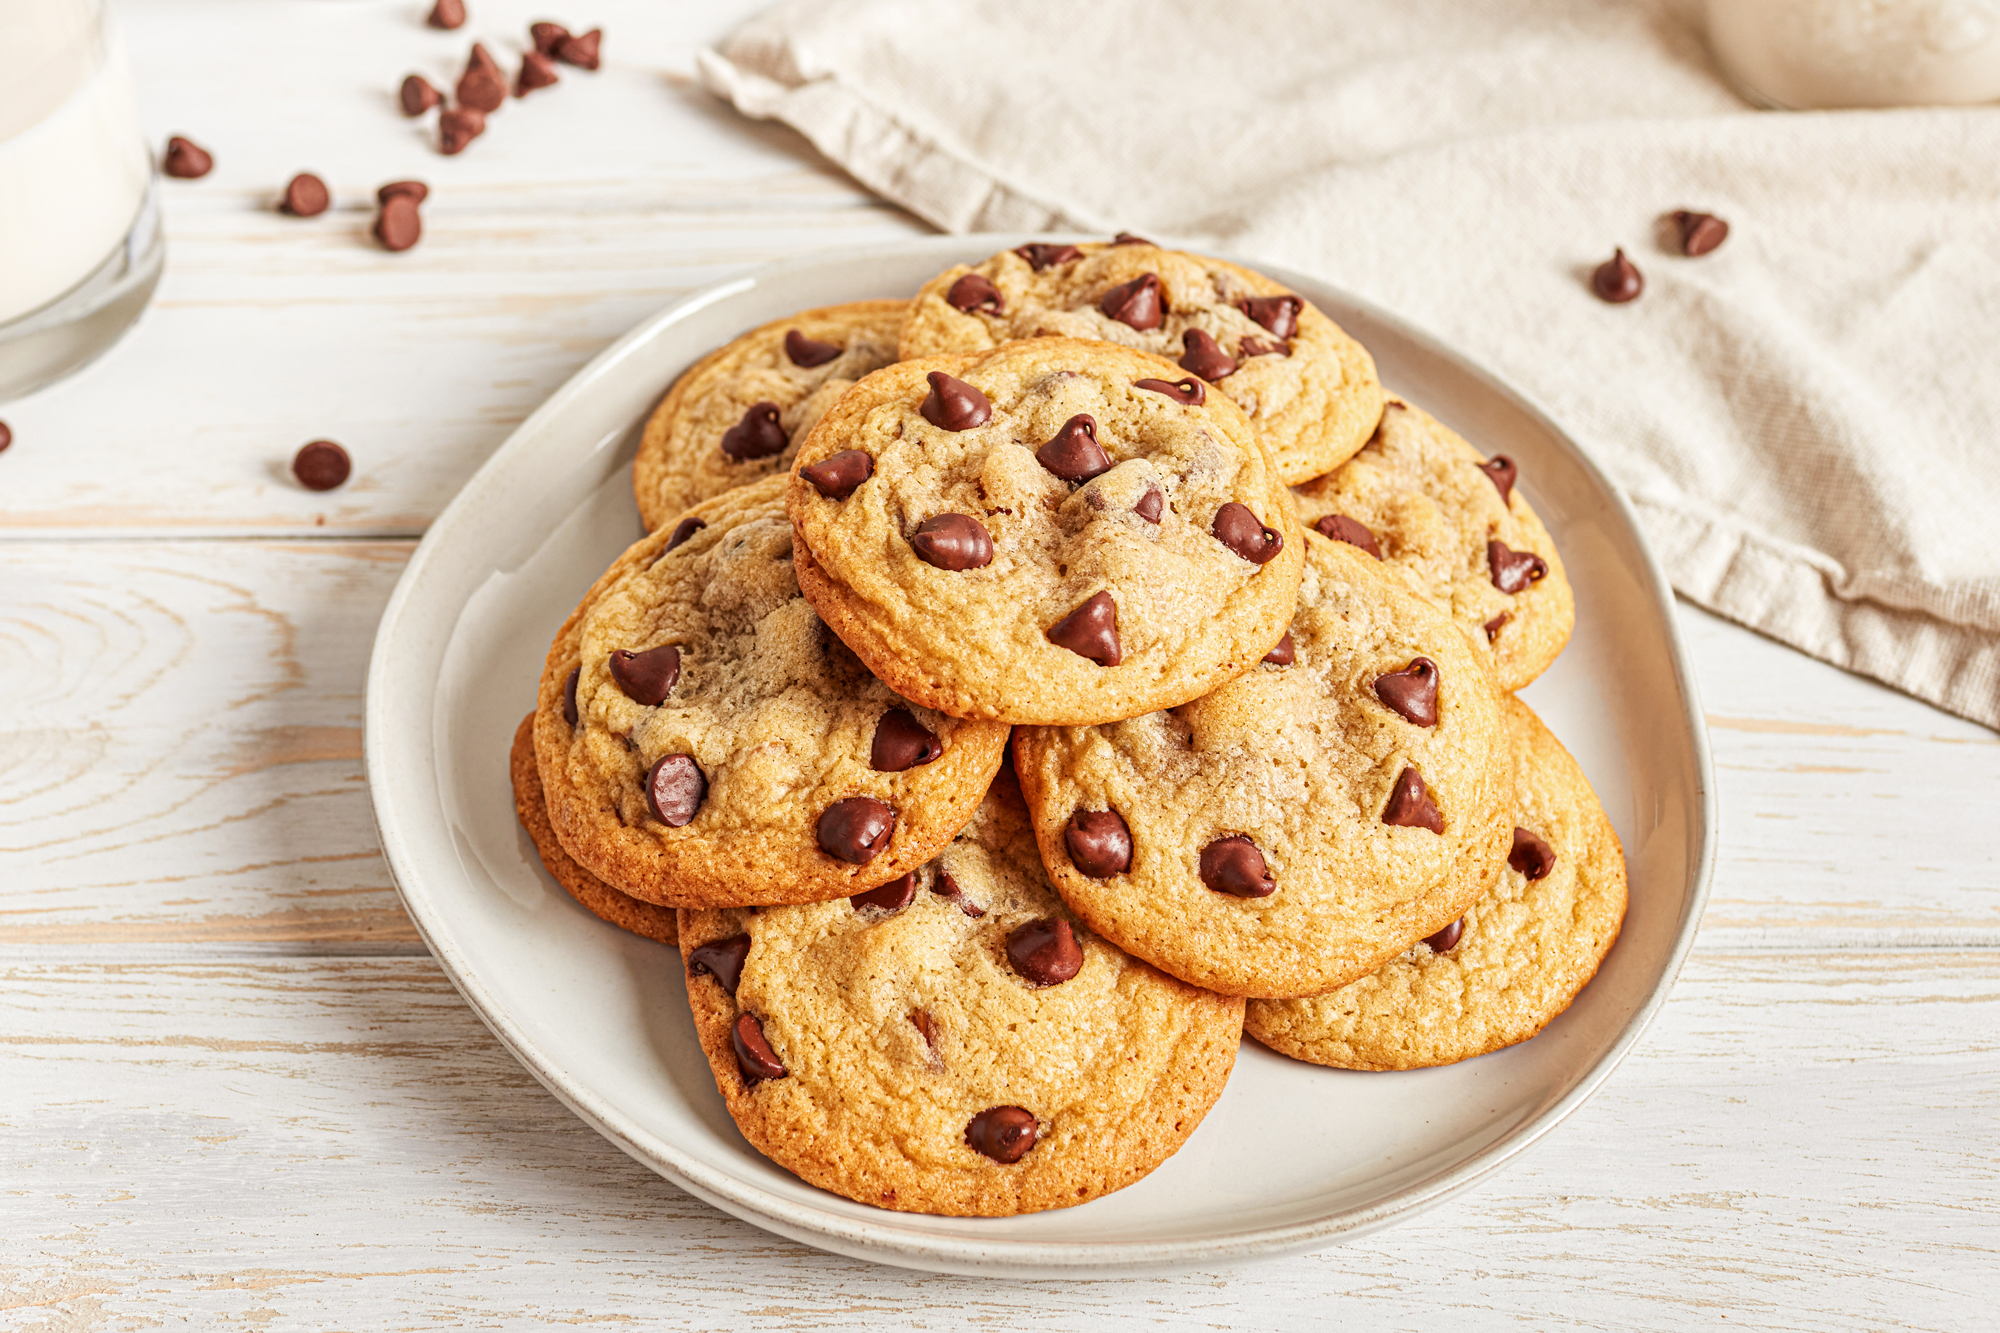 Nestle Toll House Cookies